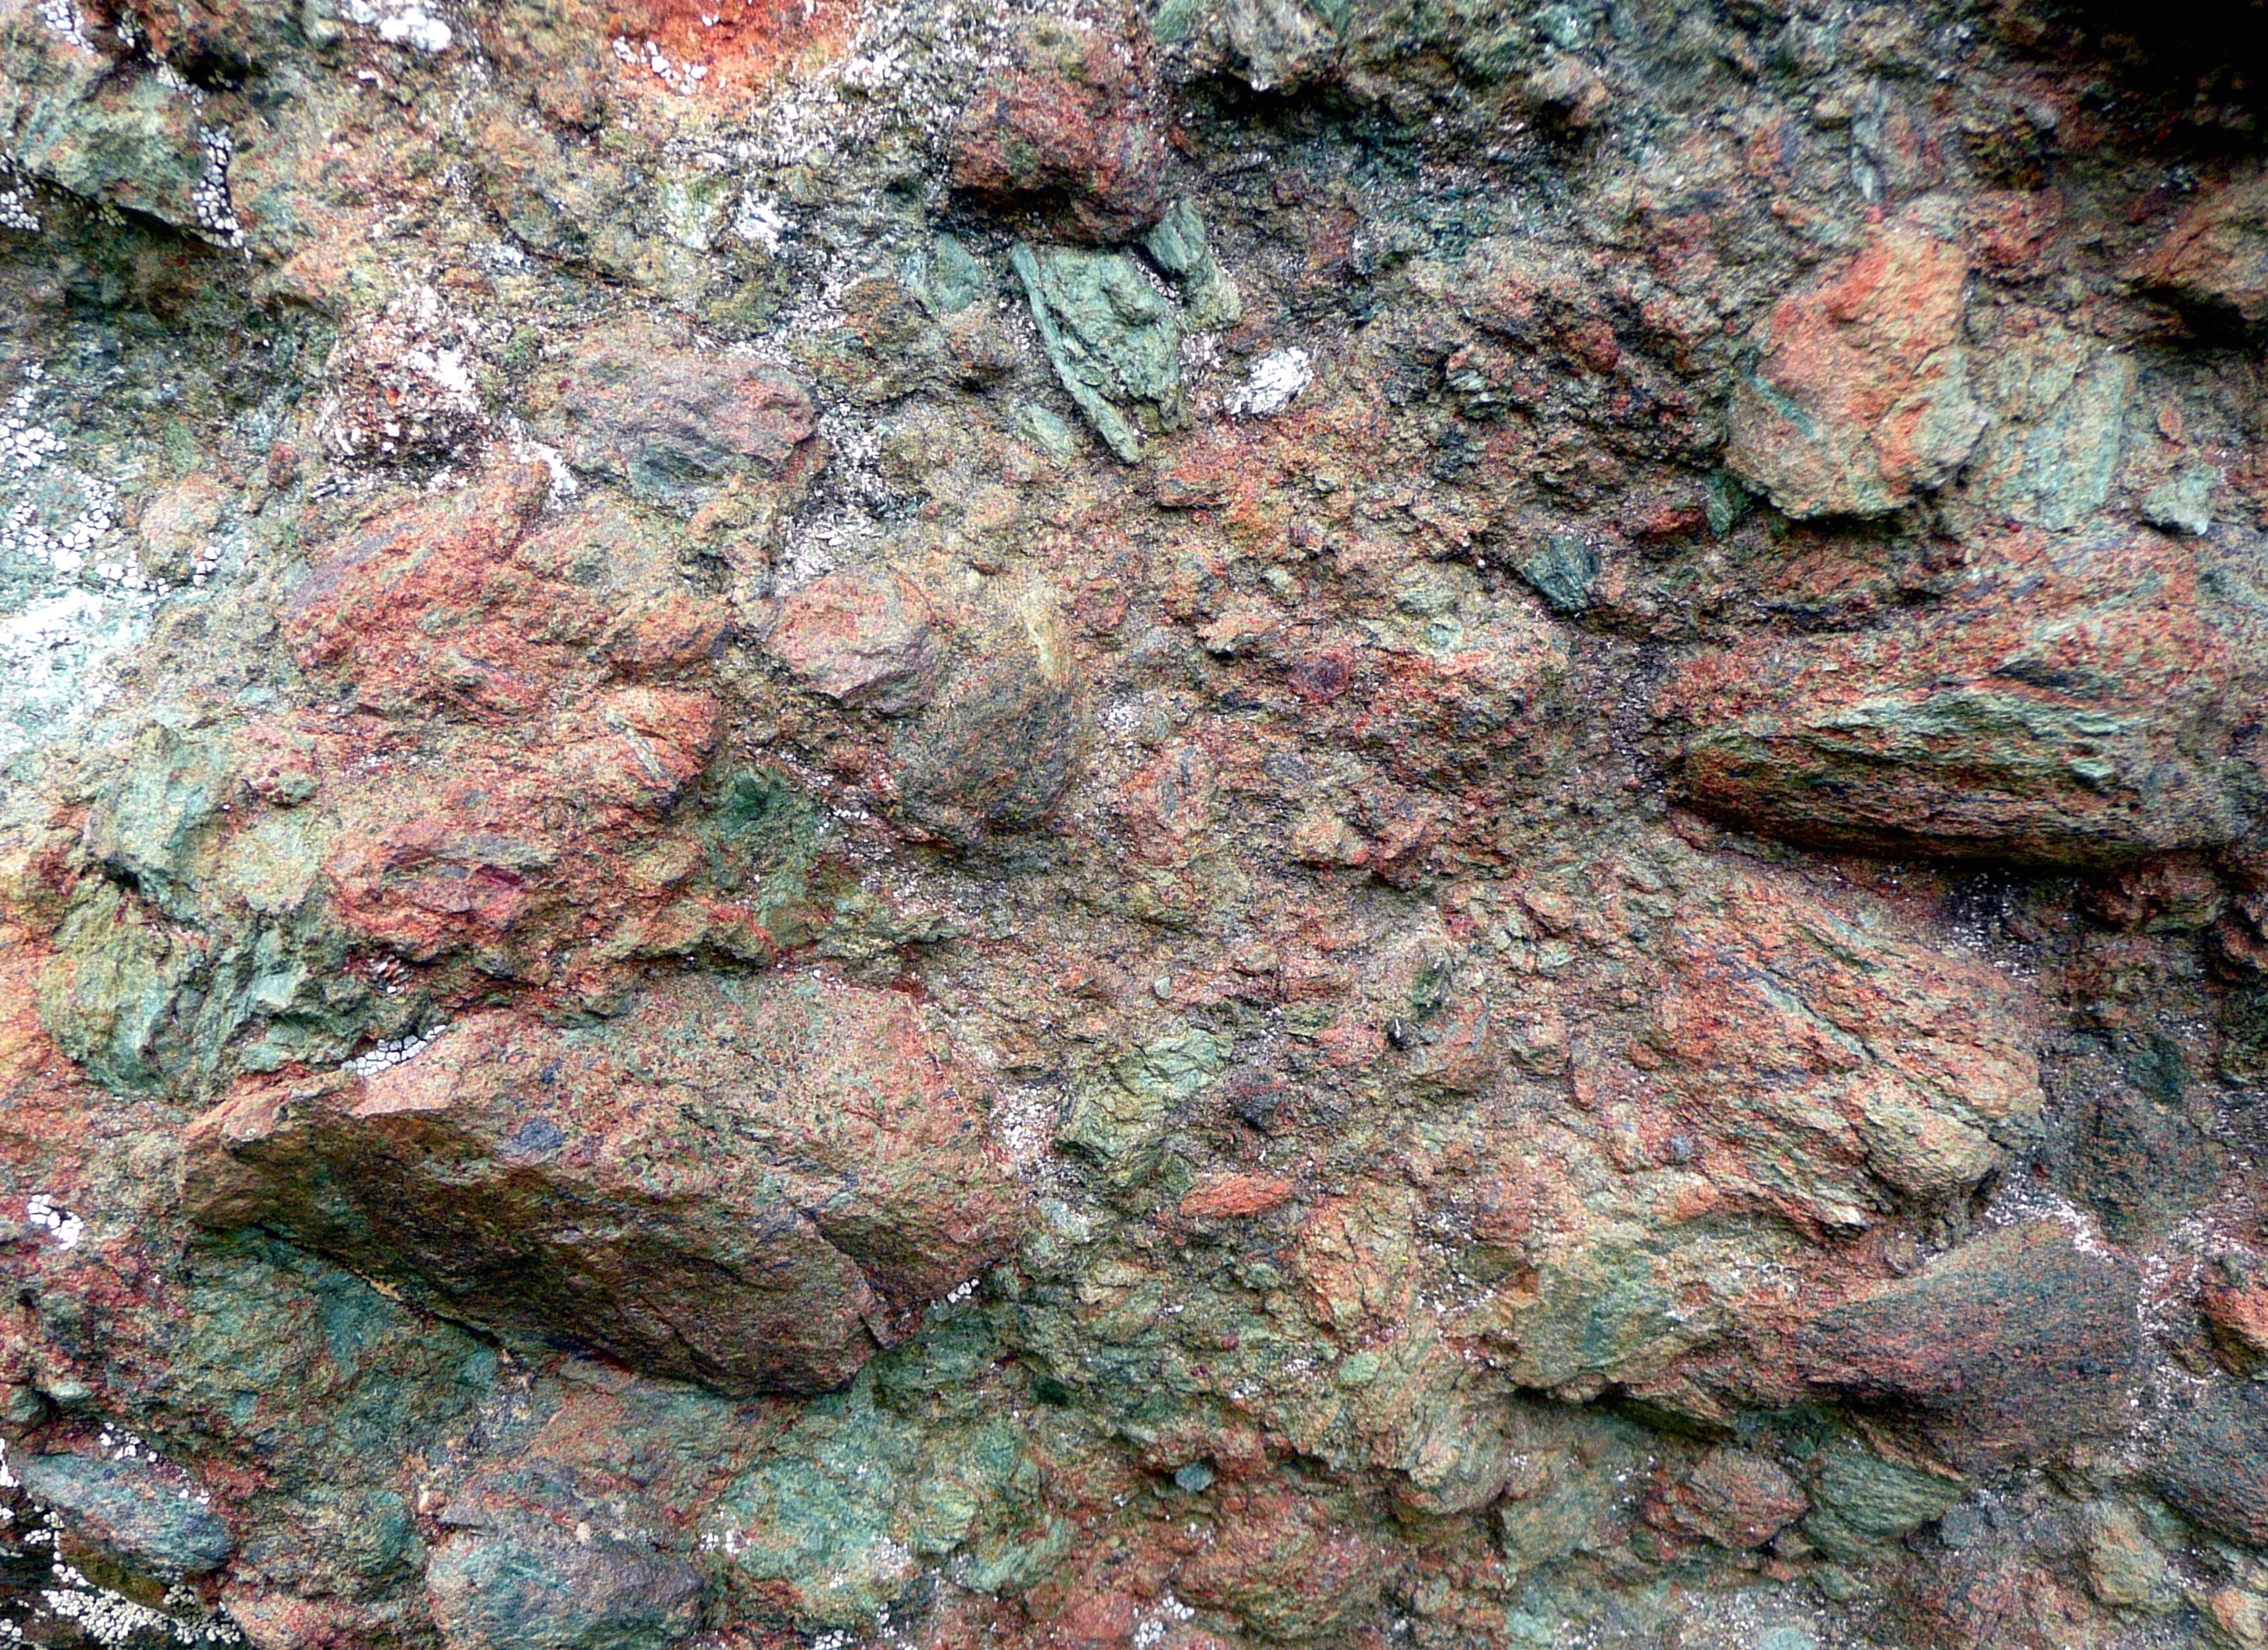 Eclogite breccias seen during the Alpine field trip